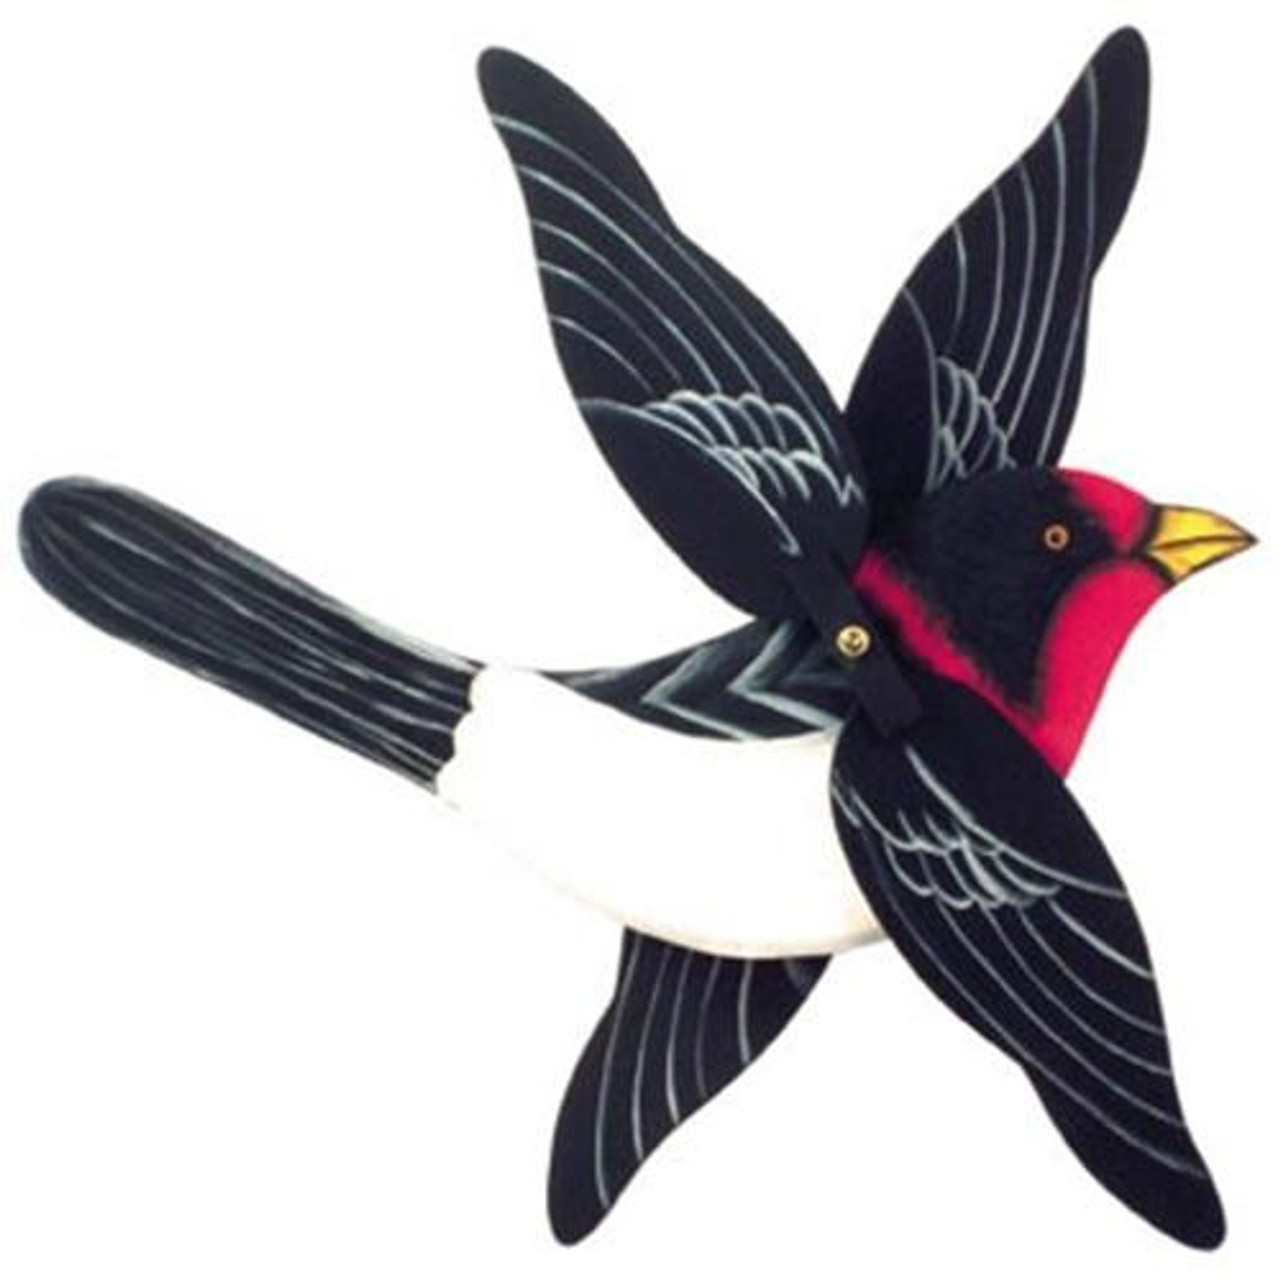 Cherry Tree Toys Red Breasted Warbler Whirligig Parts Kit